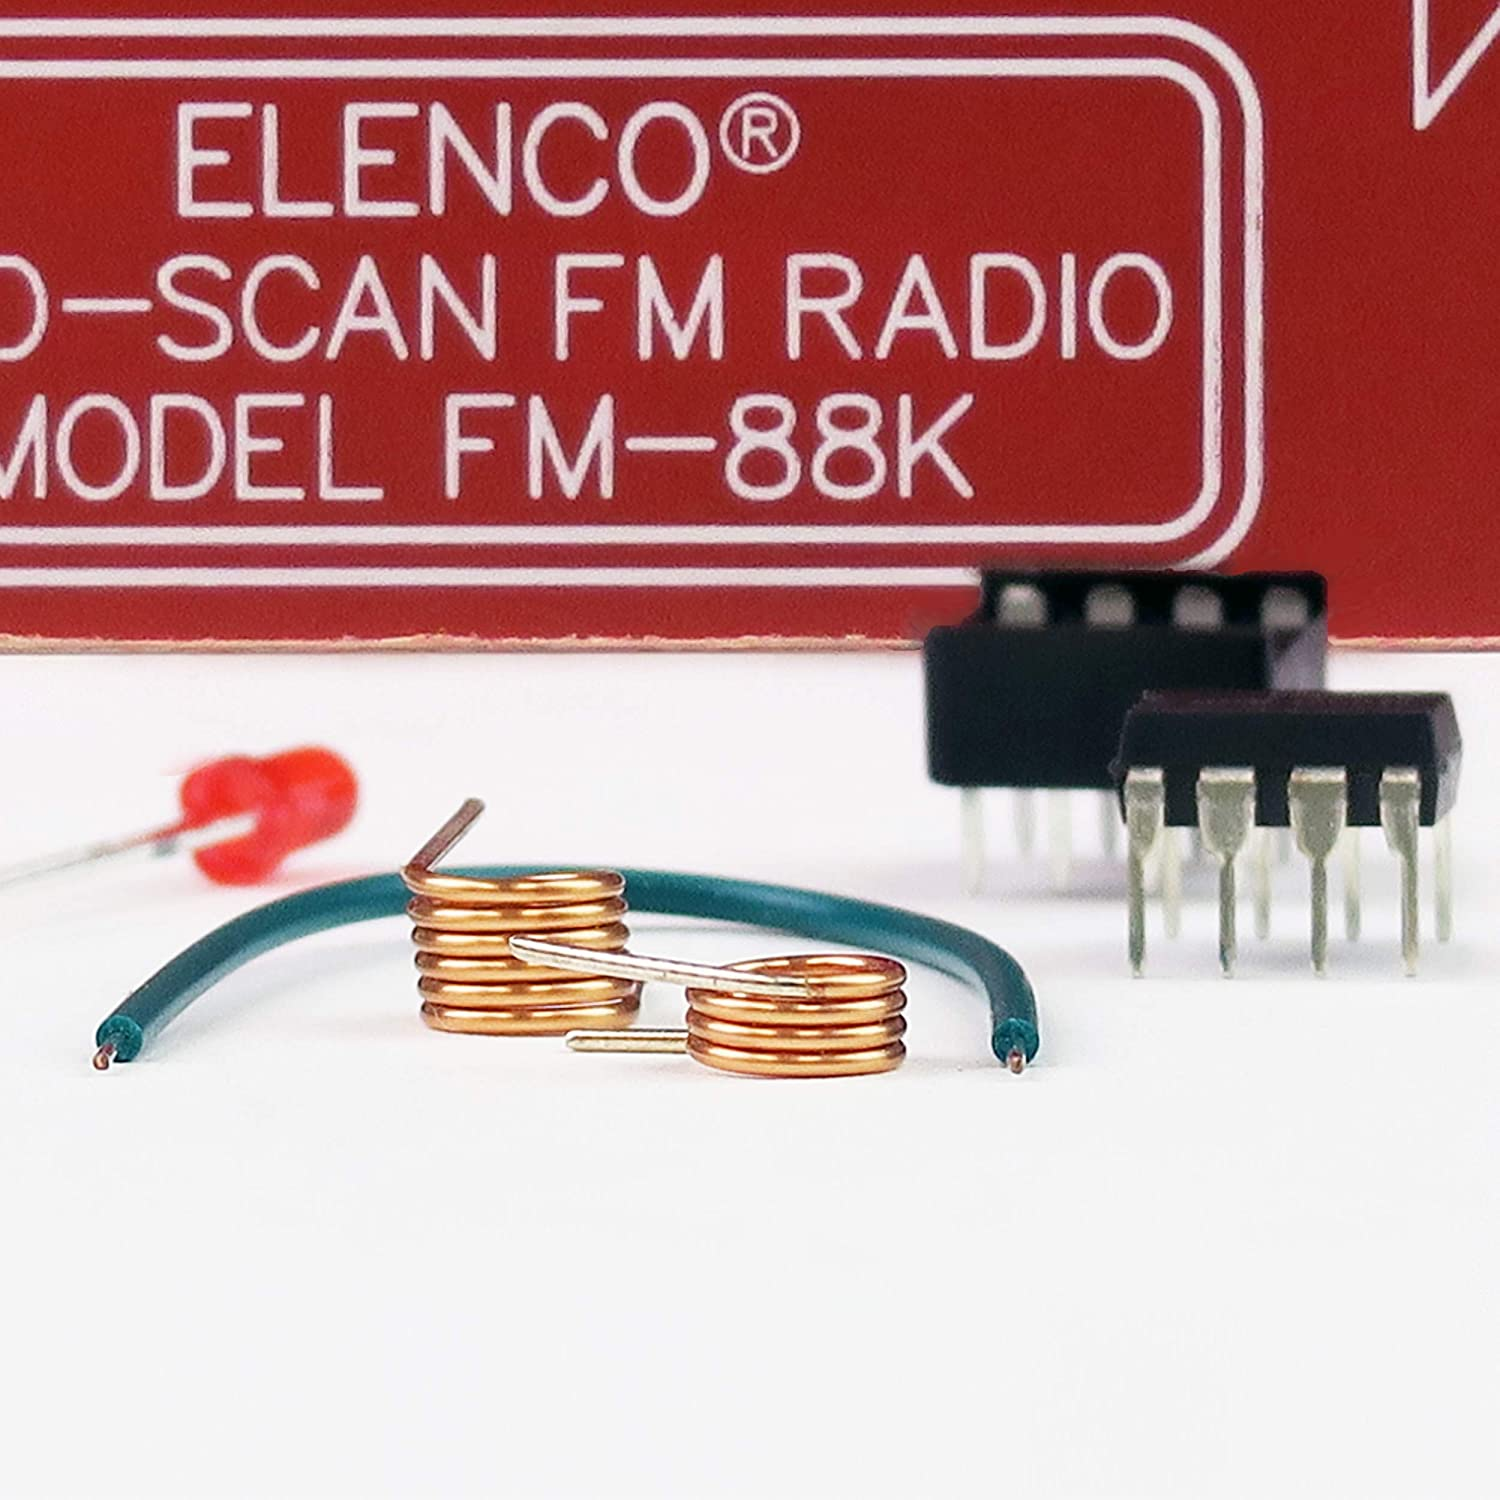 Elenco Fm Radio Kit Electronics Kits Amazon Canada American Pride Golf Cart Wiring Diagram